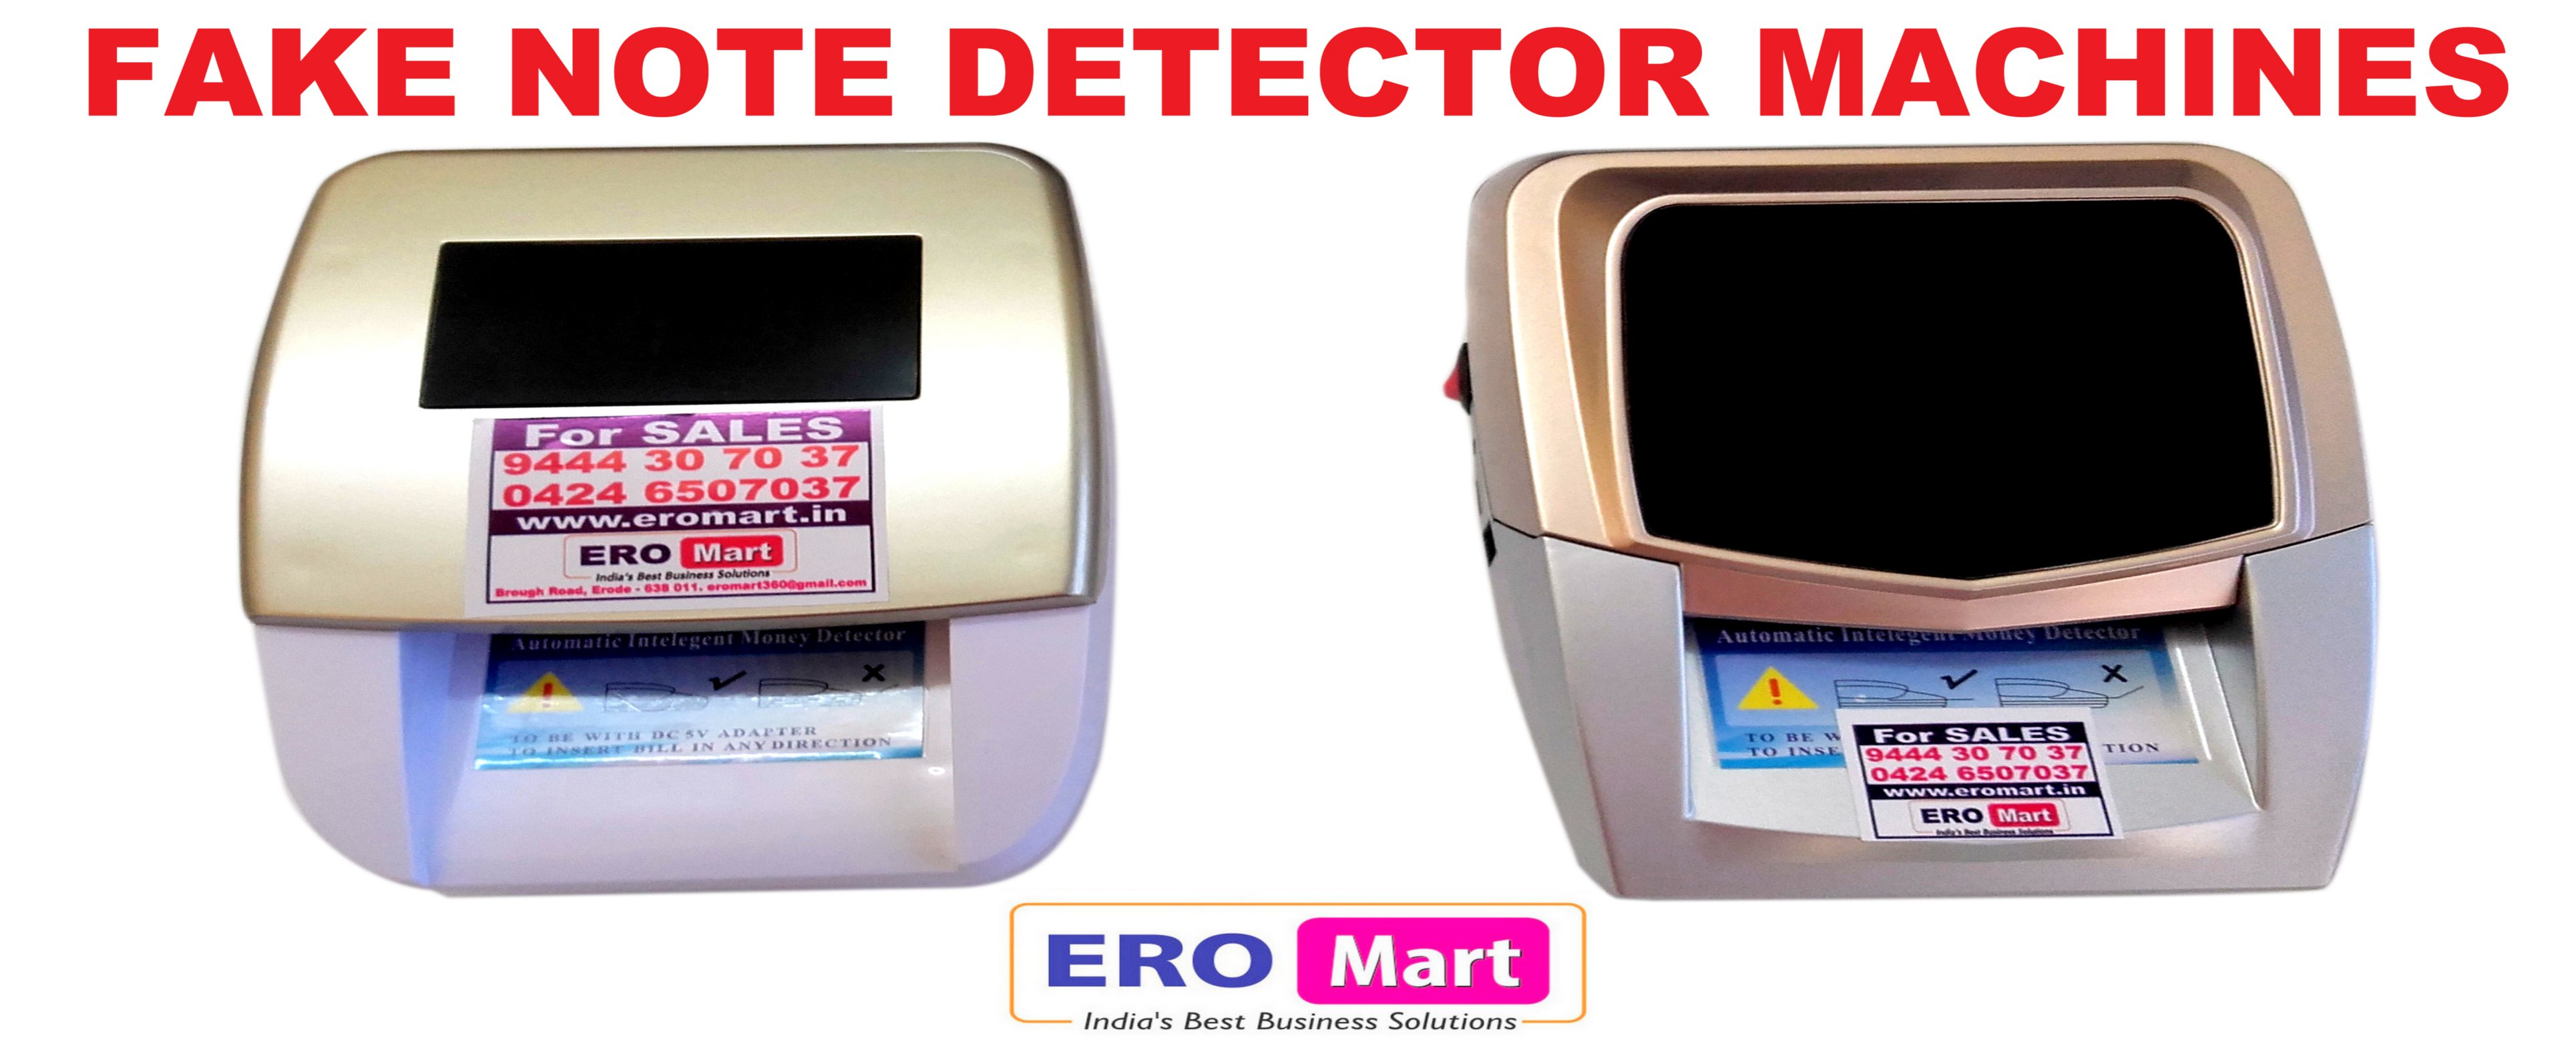 mini fake note detector machines main